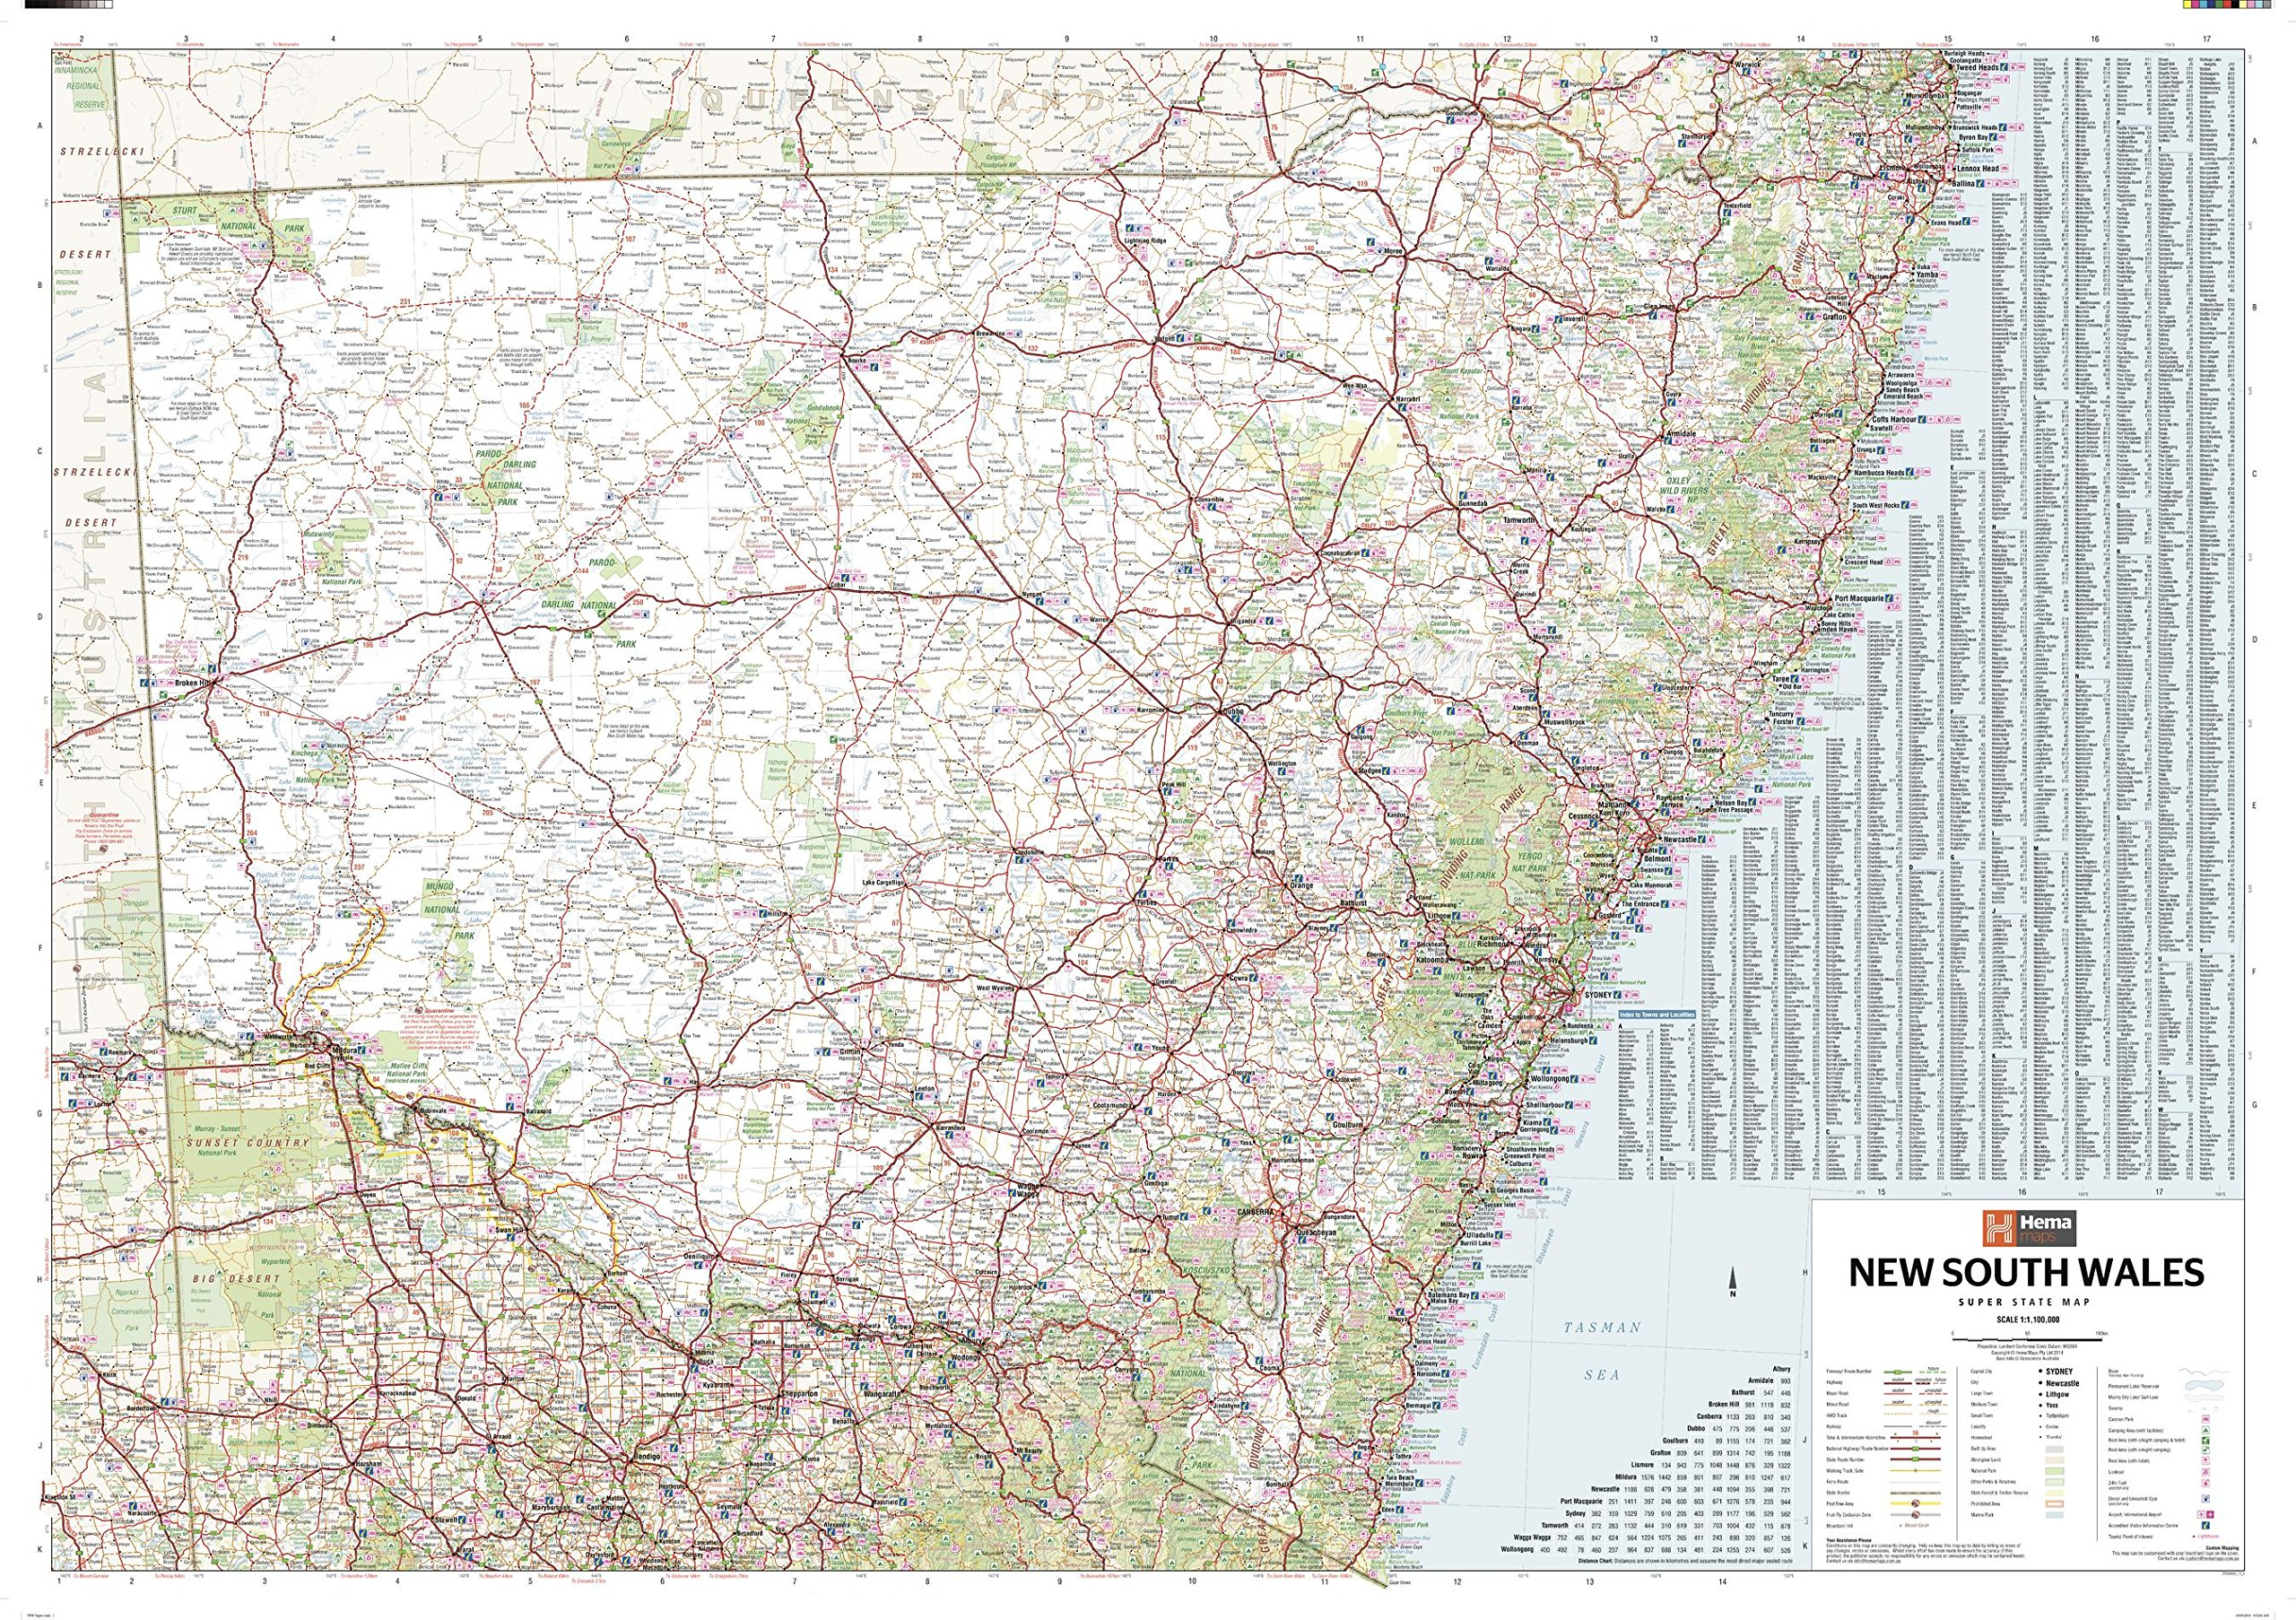 New South Wales Supermap - 56.25 x 39.75 inches - Paper - Flat Tubed PDF